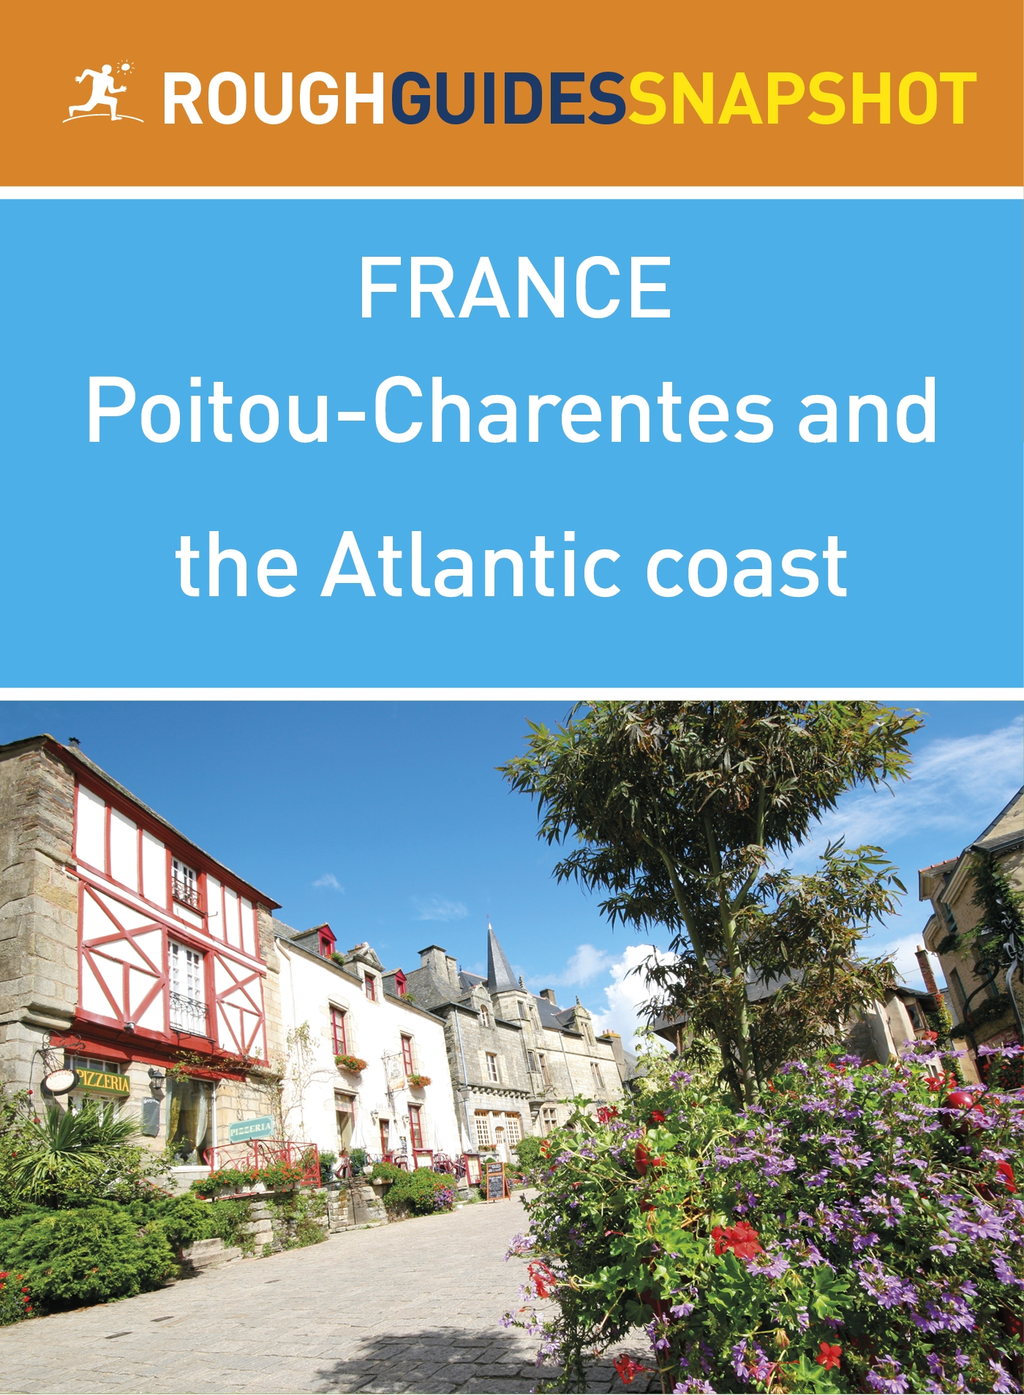 Poitou-Charentes and the Atlantic coast Rough Guides Snapshot France (includes Poitiers,  La Rochelle,  �le de R�,  Cognac,  Bordeaux and the wineries)